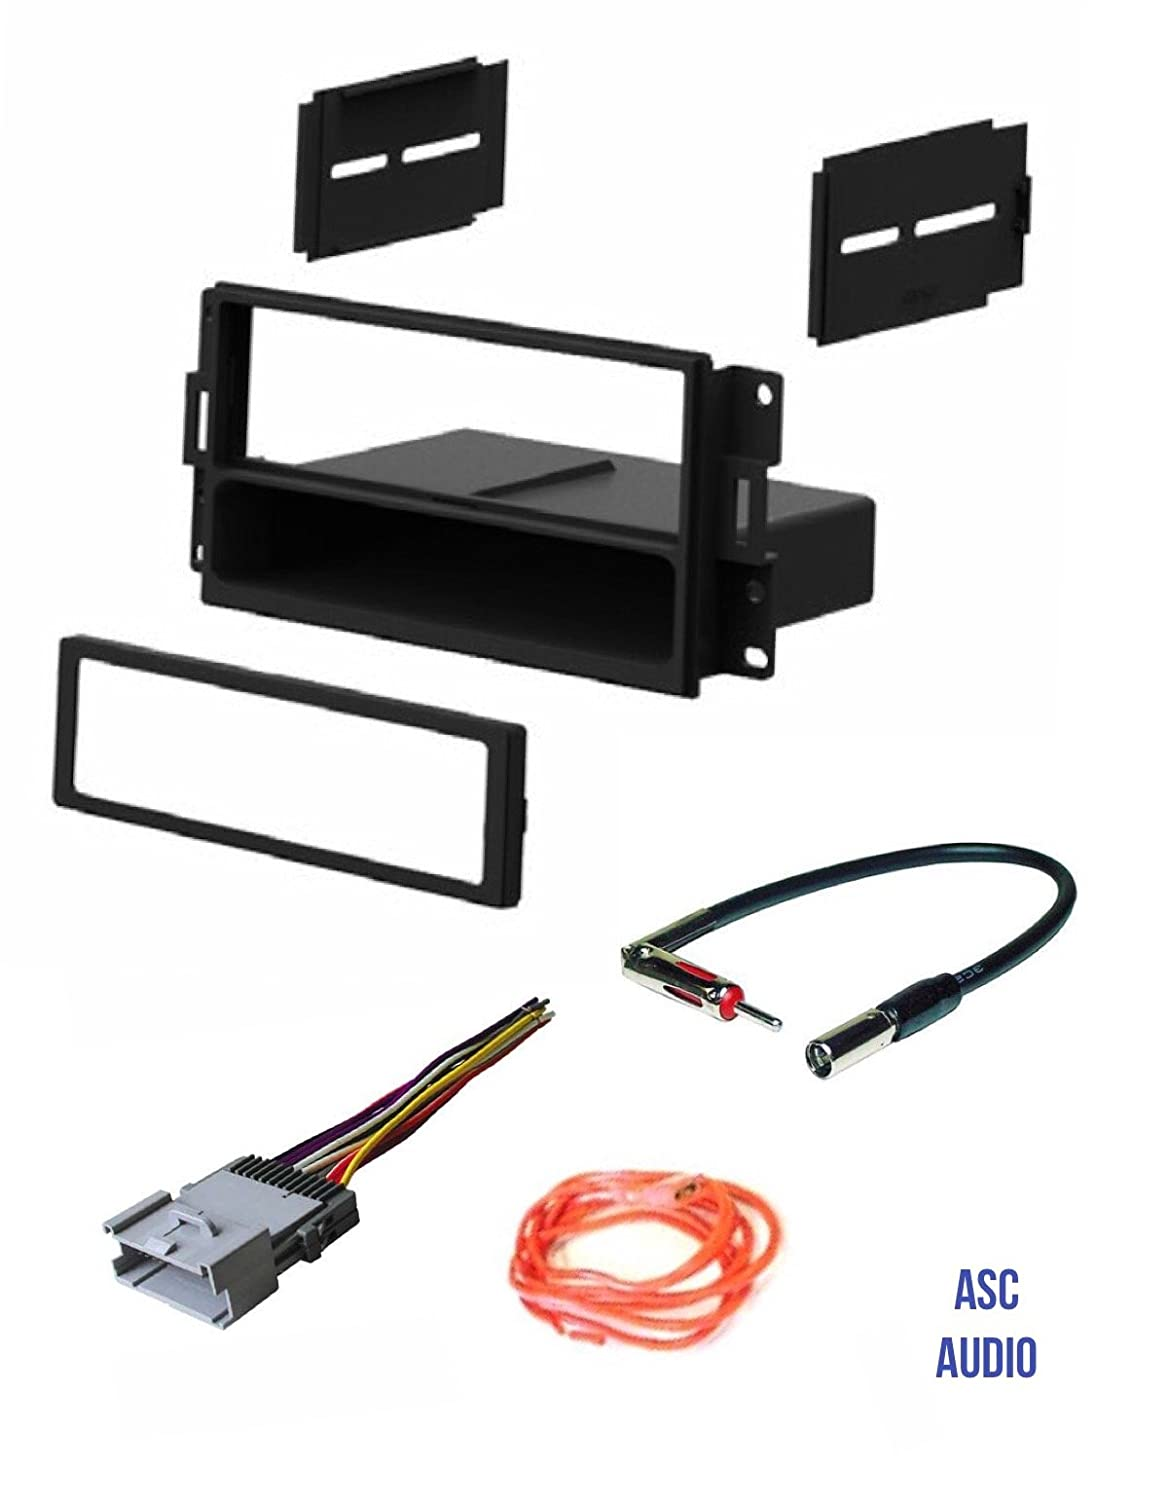 ASC Audio Car Stereo Radio Dash Install Kit, Wire Harness, and Antenna Adapter to Install a Single Din Radio for 2004 2005 2006 2007 2008 Pontiac Grand Prix w/ No Factory Premium Amp